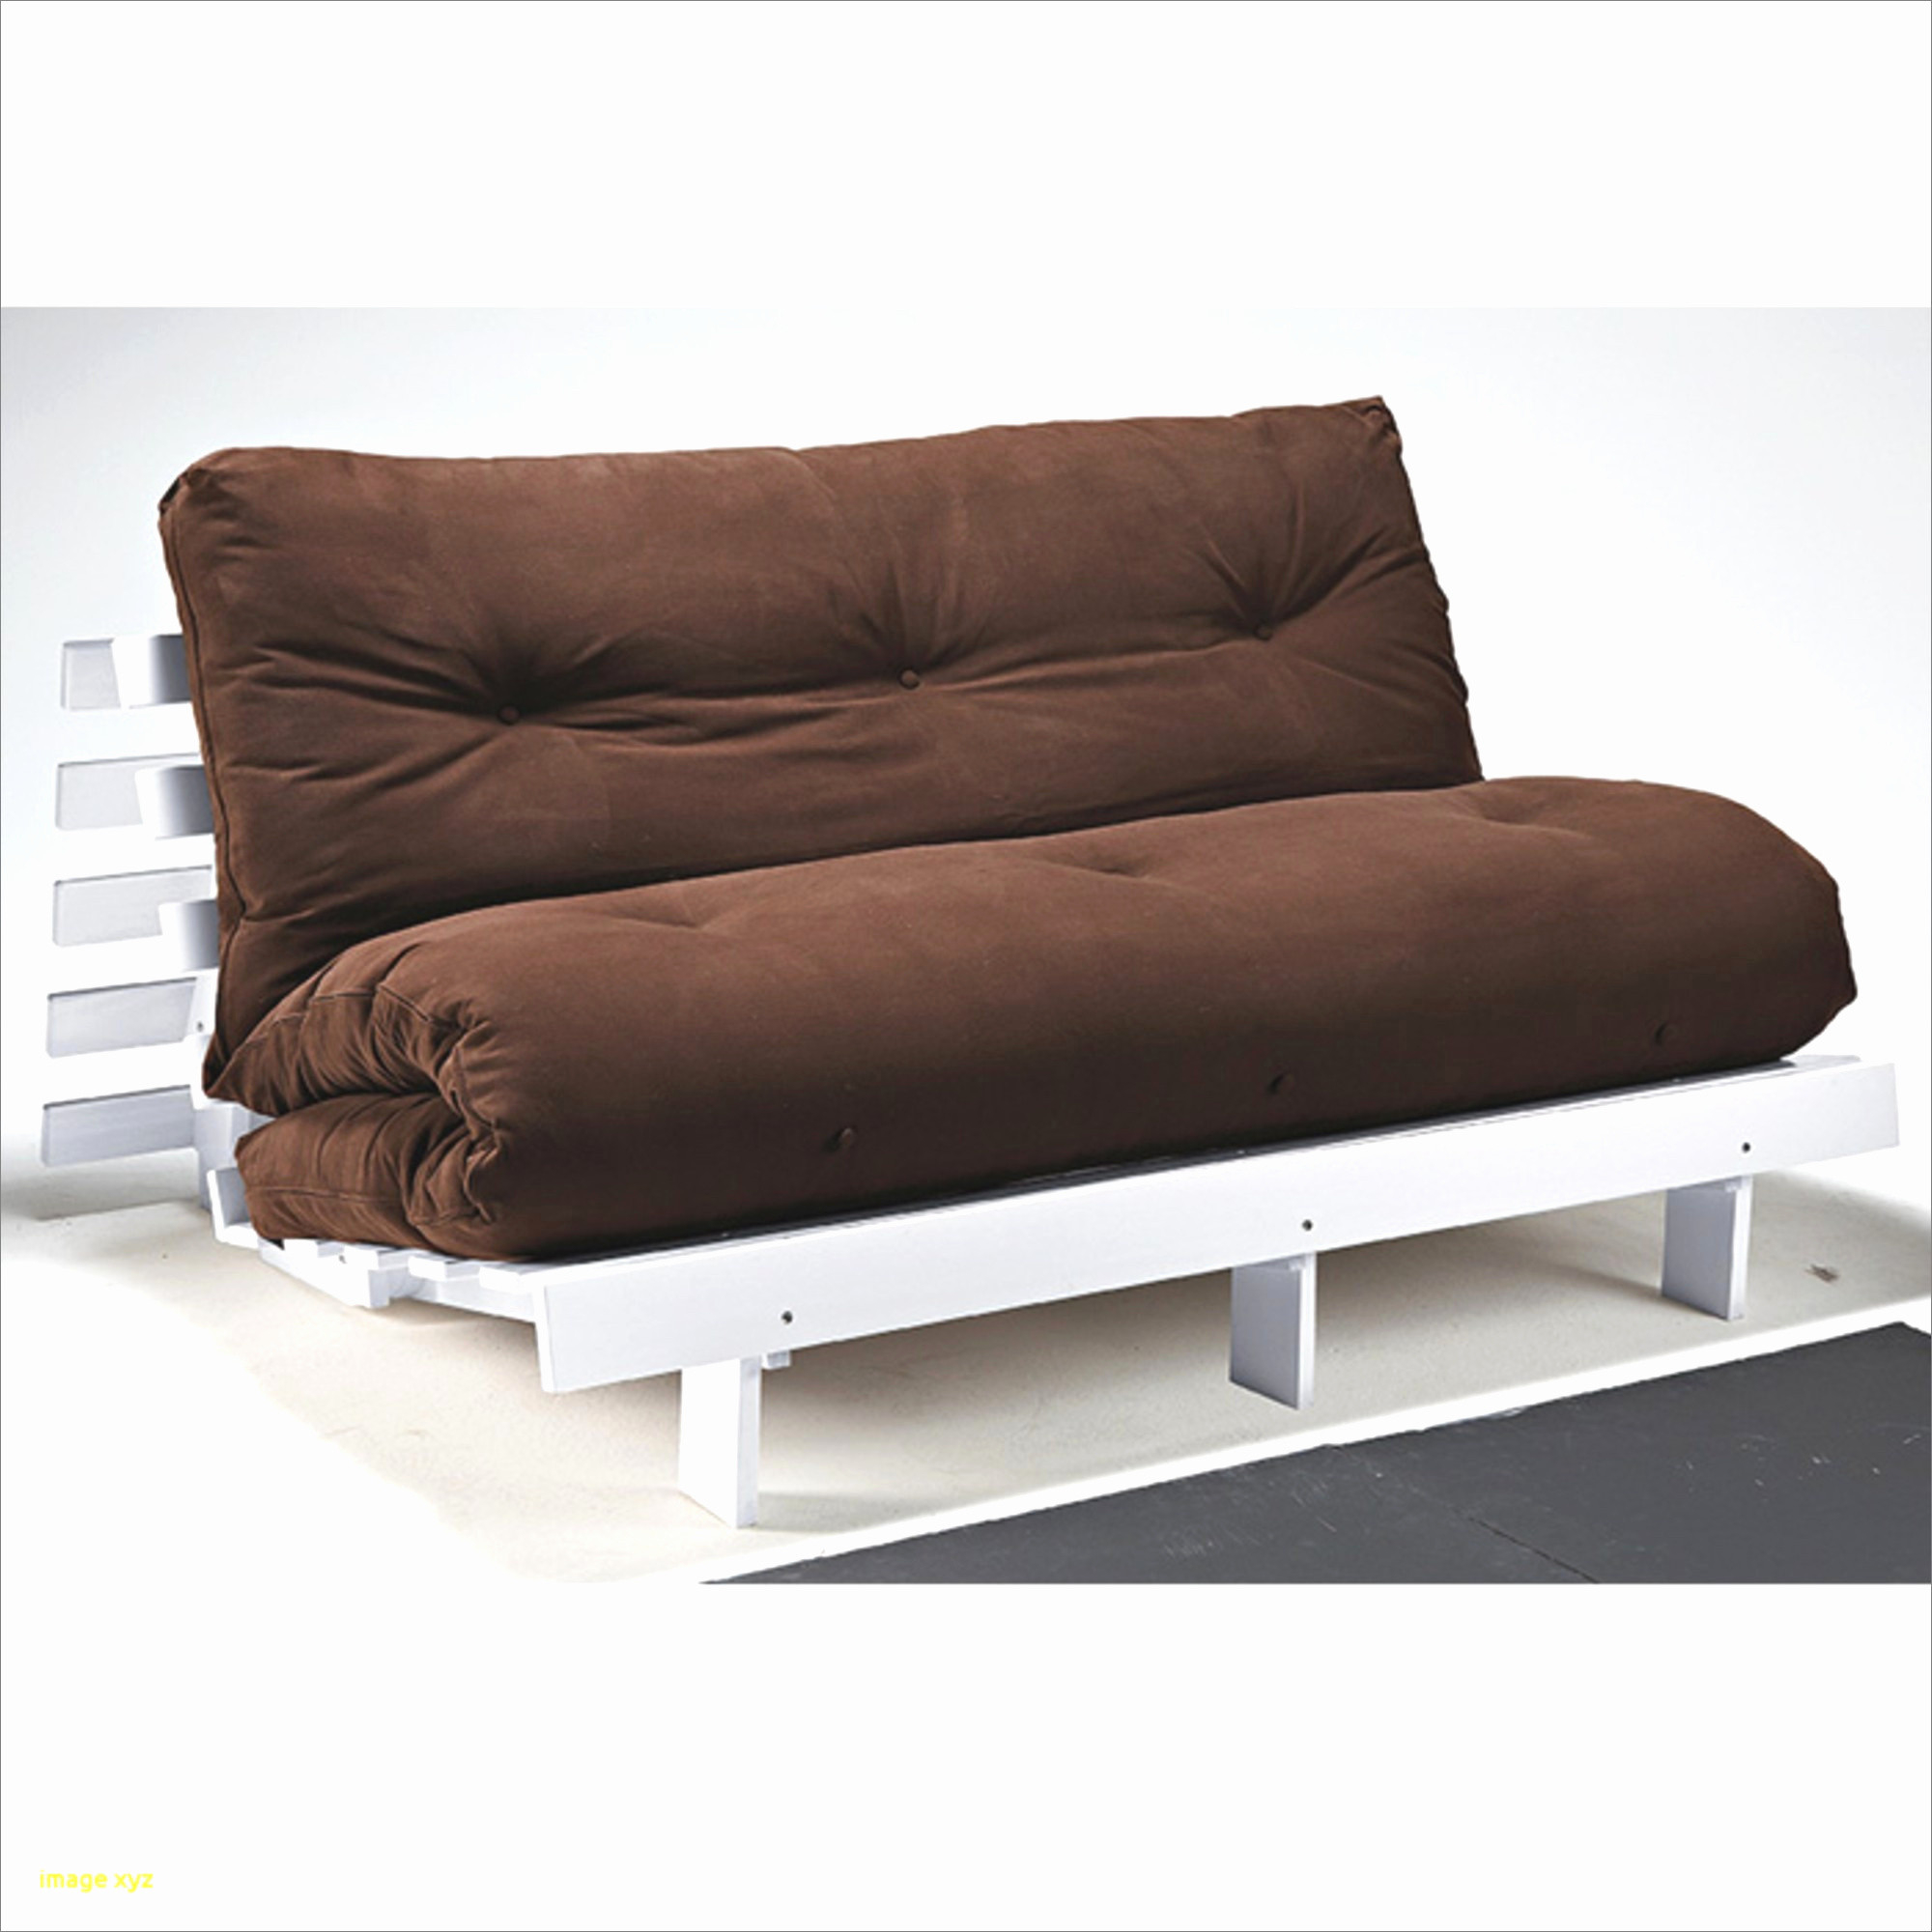 30 Beau Canape Convertible Couchage Quoti n 160x200